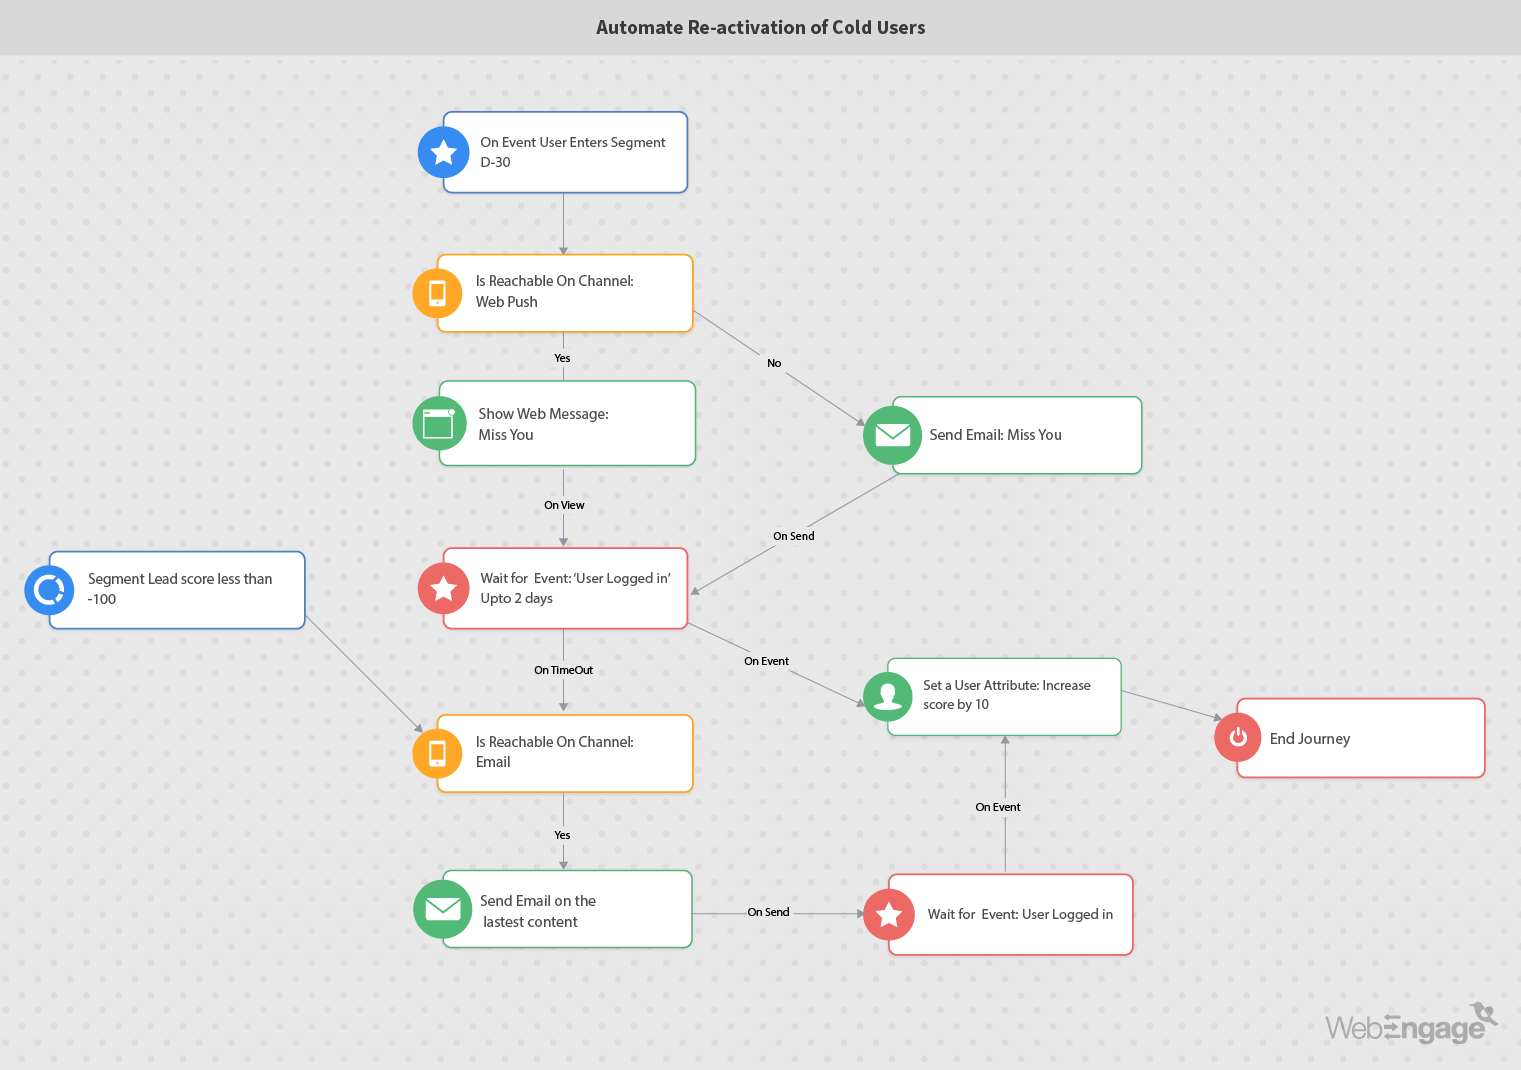 Marketing automation workflow for reactivation of cold users